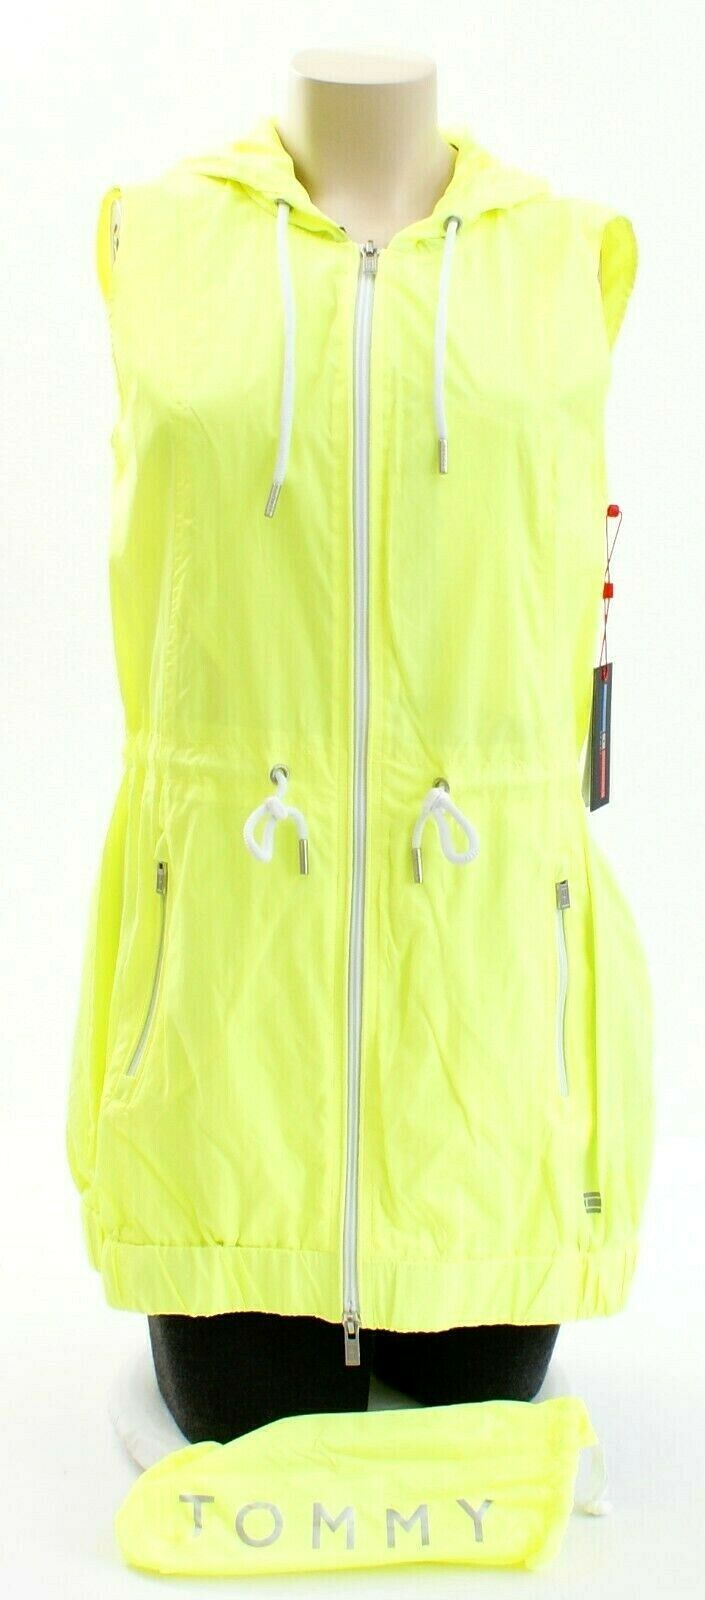 Tommy Hilfiger Yellow Zip Front Drawstring Hooded Sport Vest Women's Packable